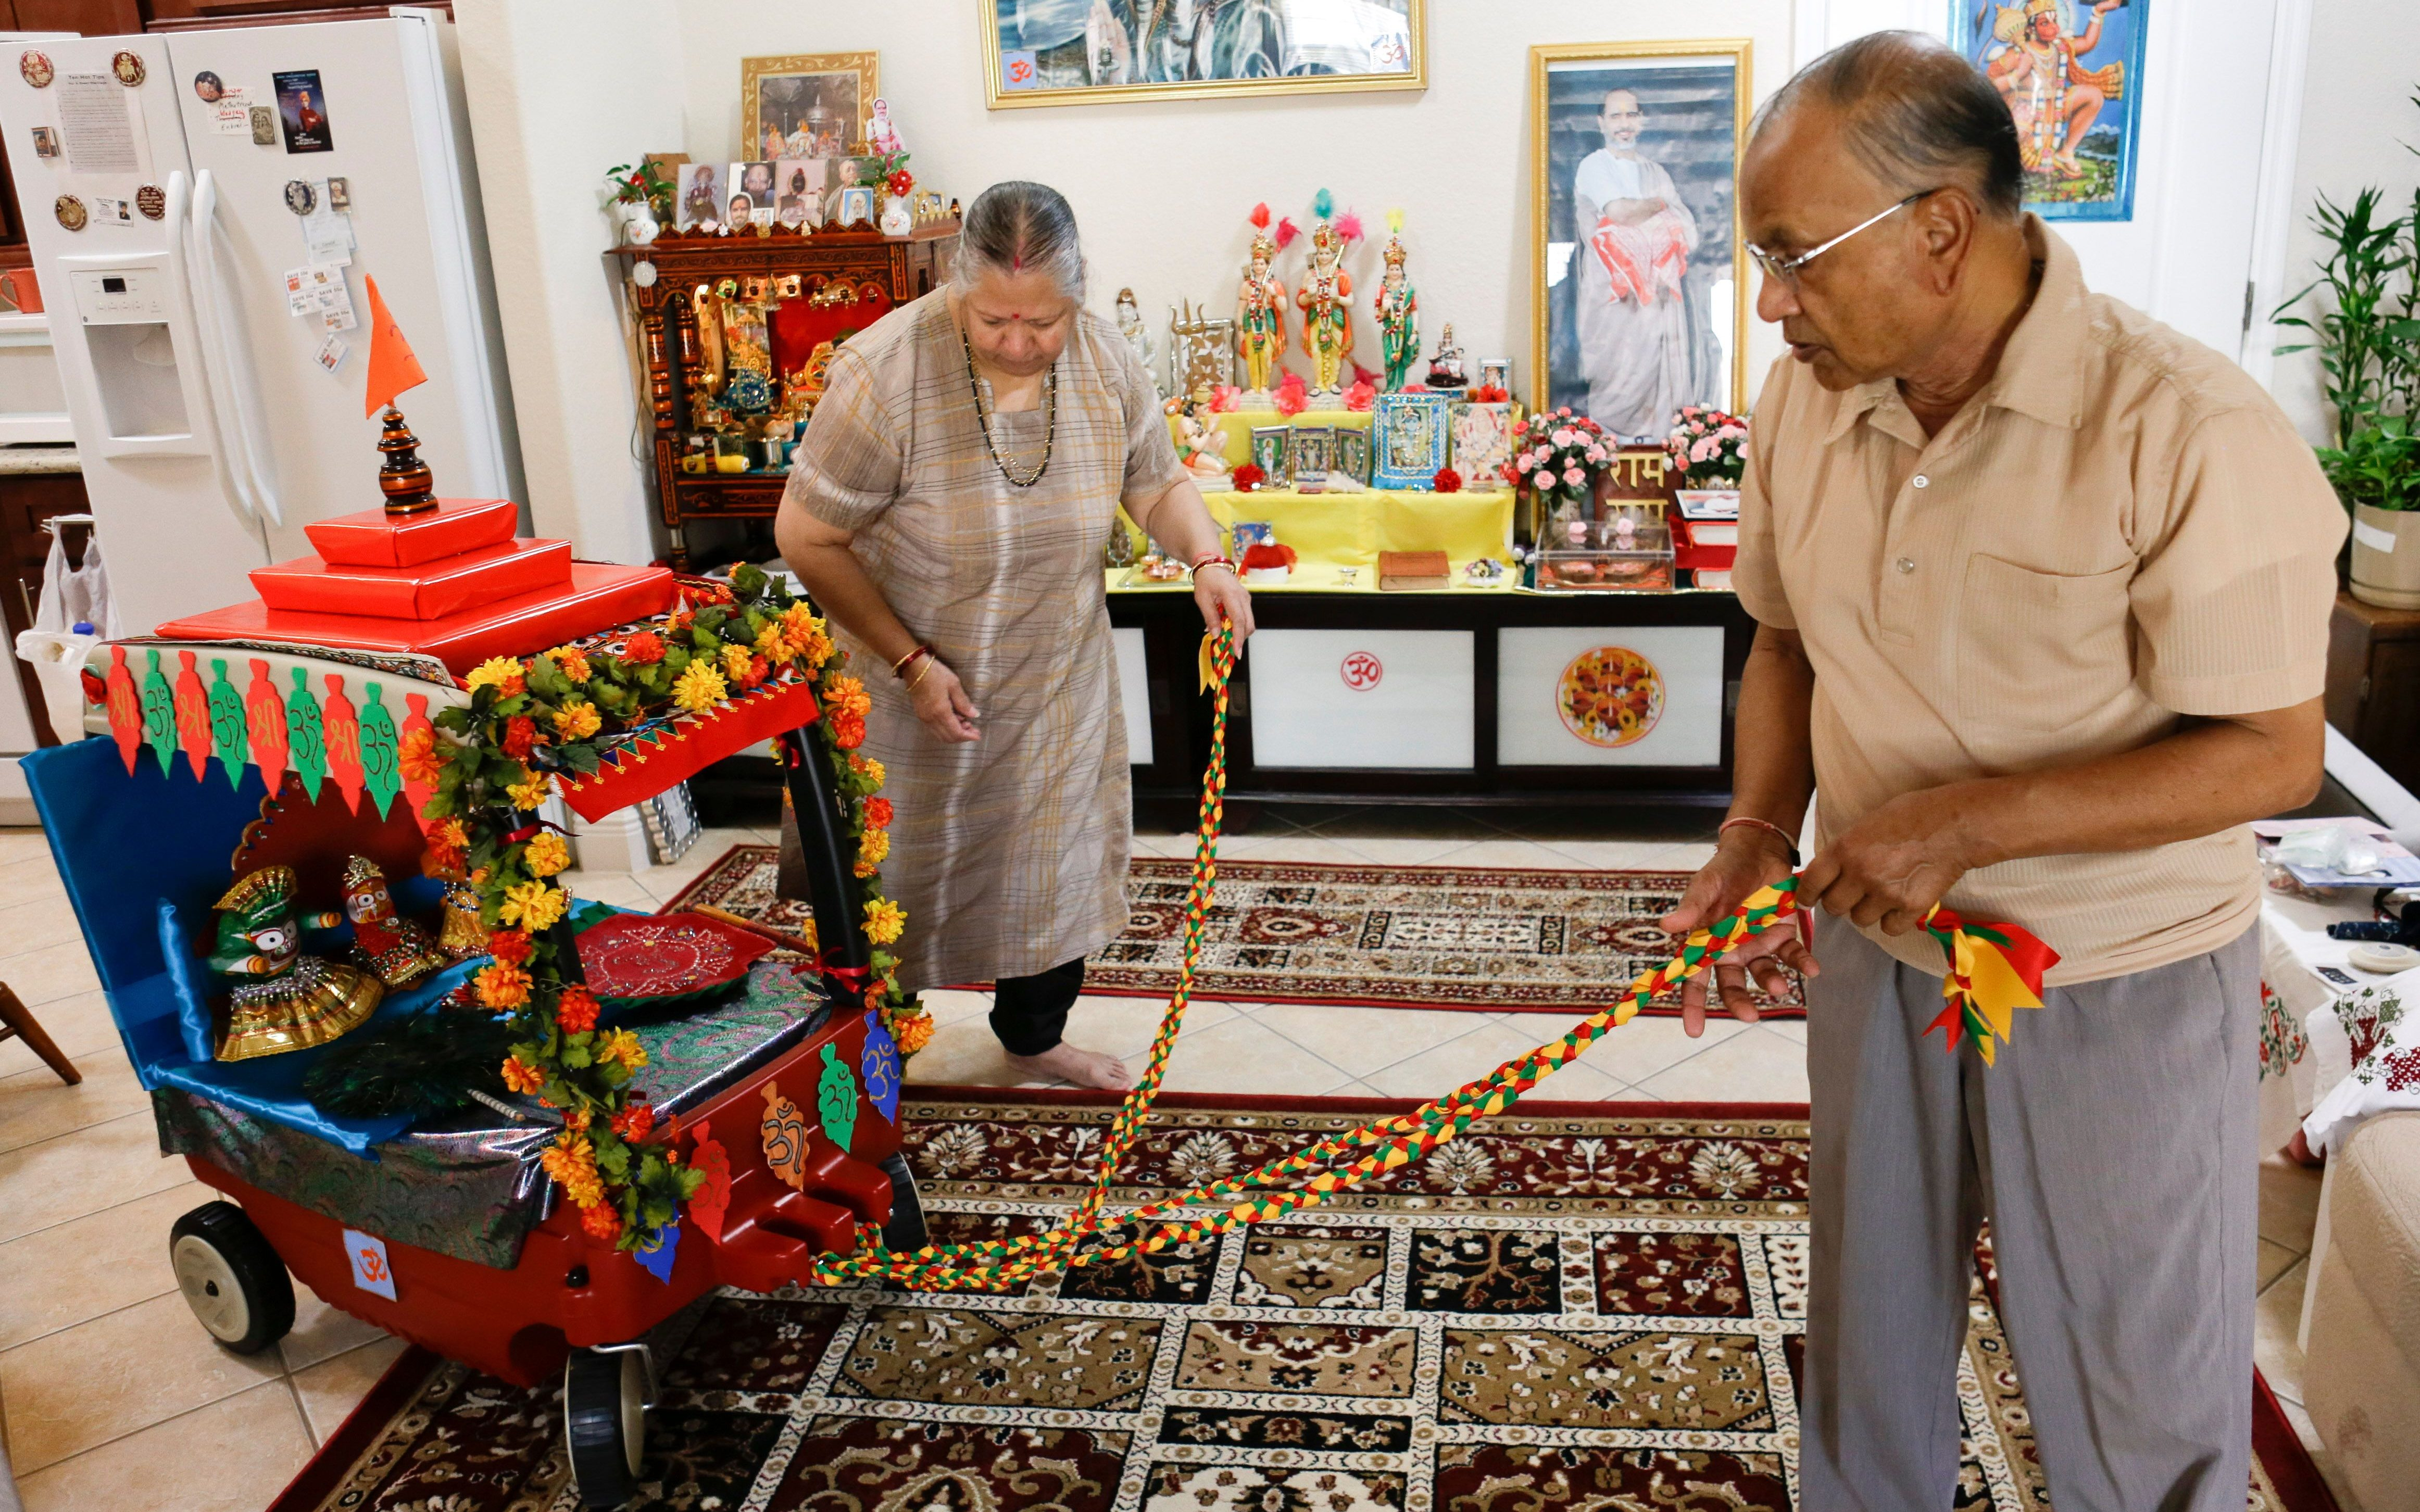 Indians look forward to old age way more than anyone else